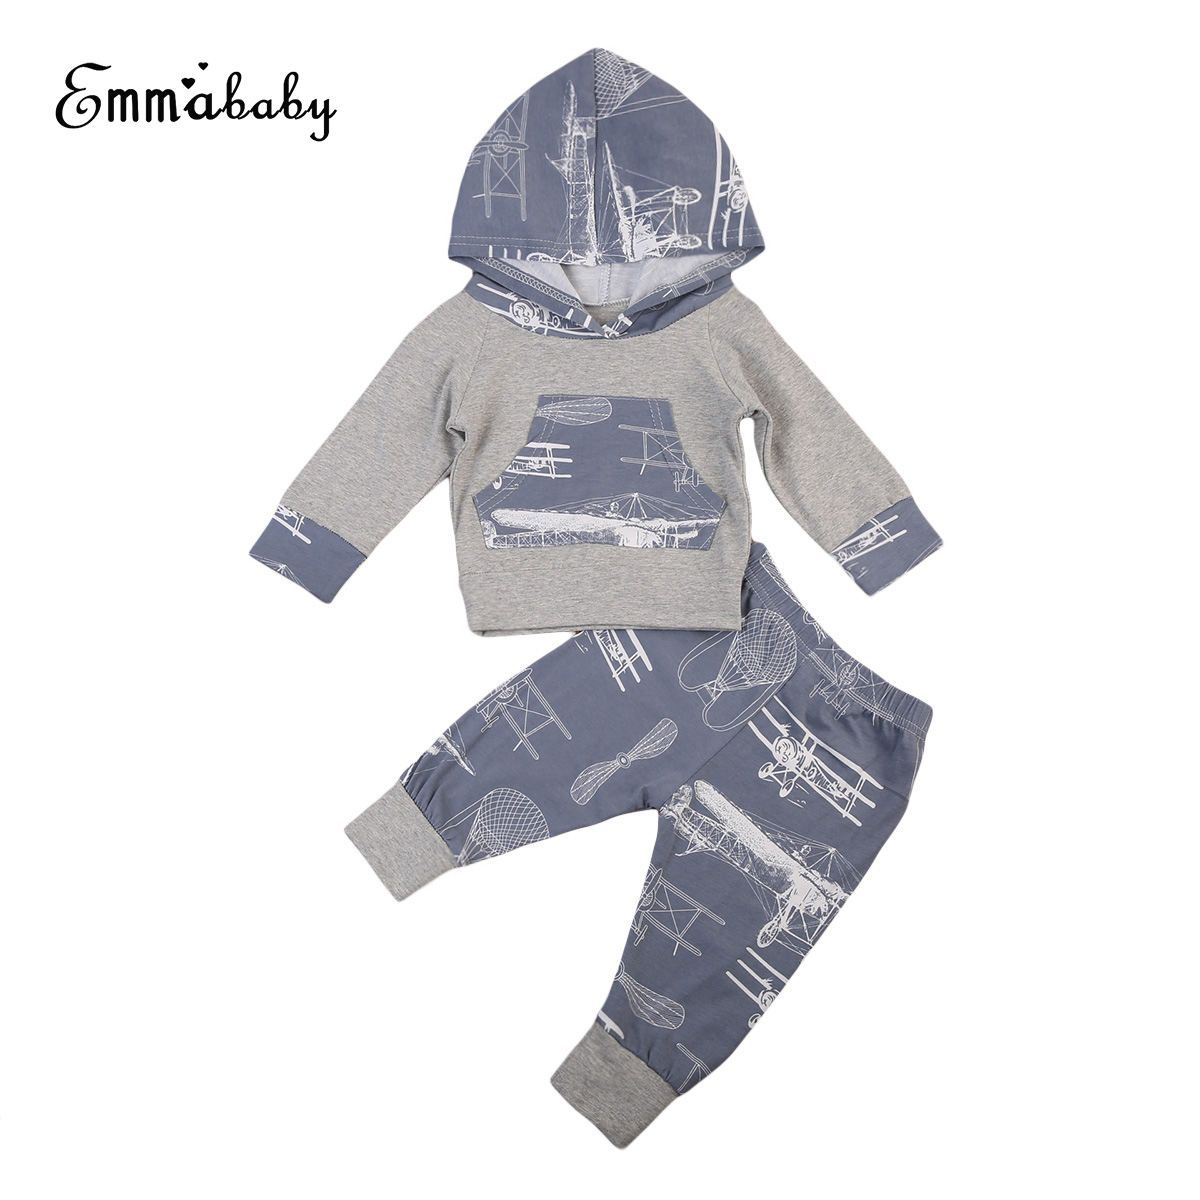 Xmas Halloween Baby Graffiti Printing Hooded Clothing Set Toddler Kids Baby Girls Boys Hoodies Tops Pants Outfits Clothes